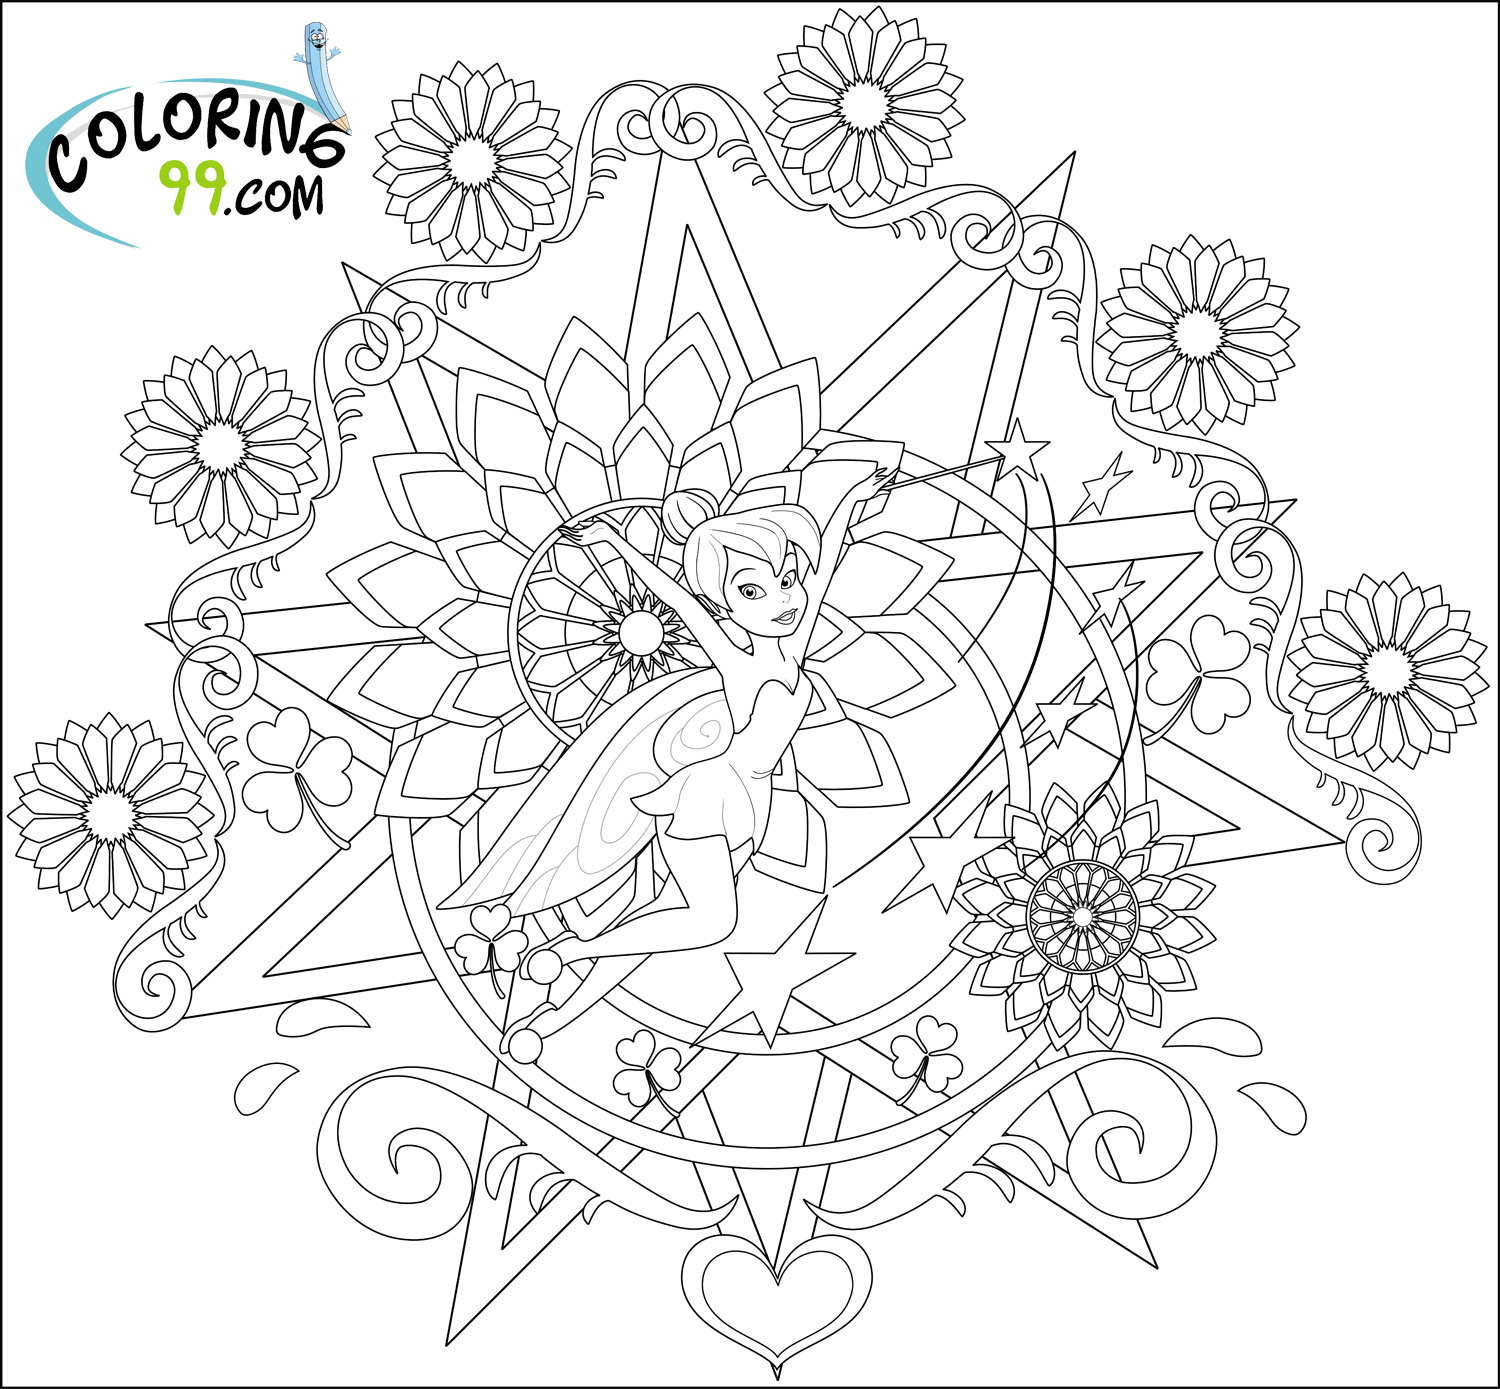 tinkerbell coloring pages free printable tinkerbell coloring pages tinkerbell coloring pages printable free